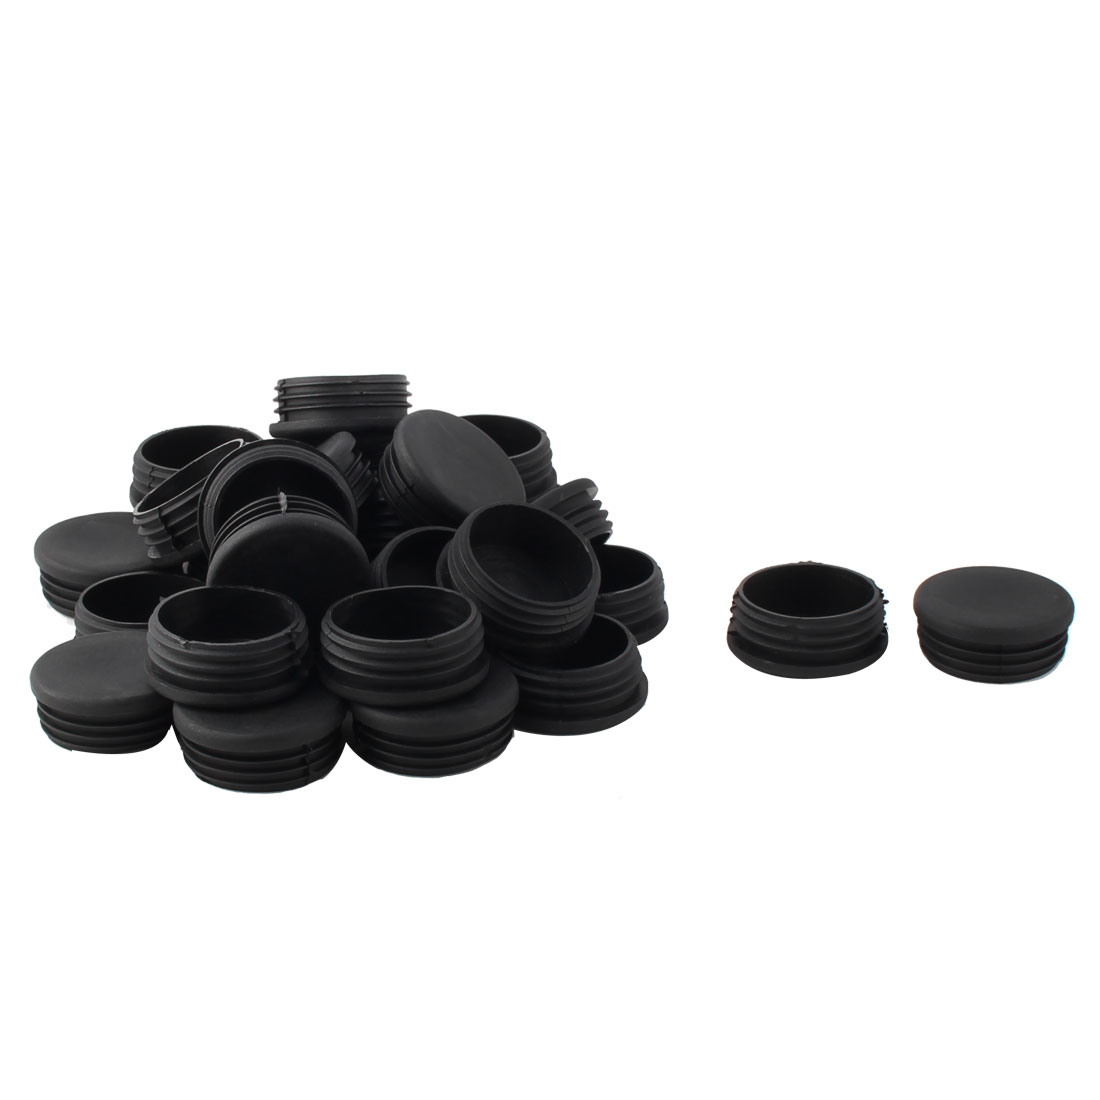 Plastic Round Tube Insert Blanking End Protectors Caps Black 50mm 30 PCS